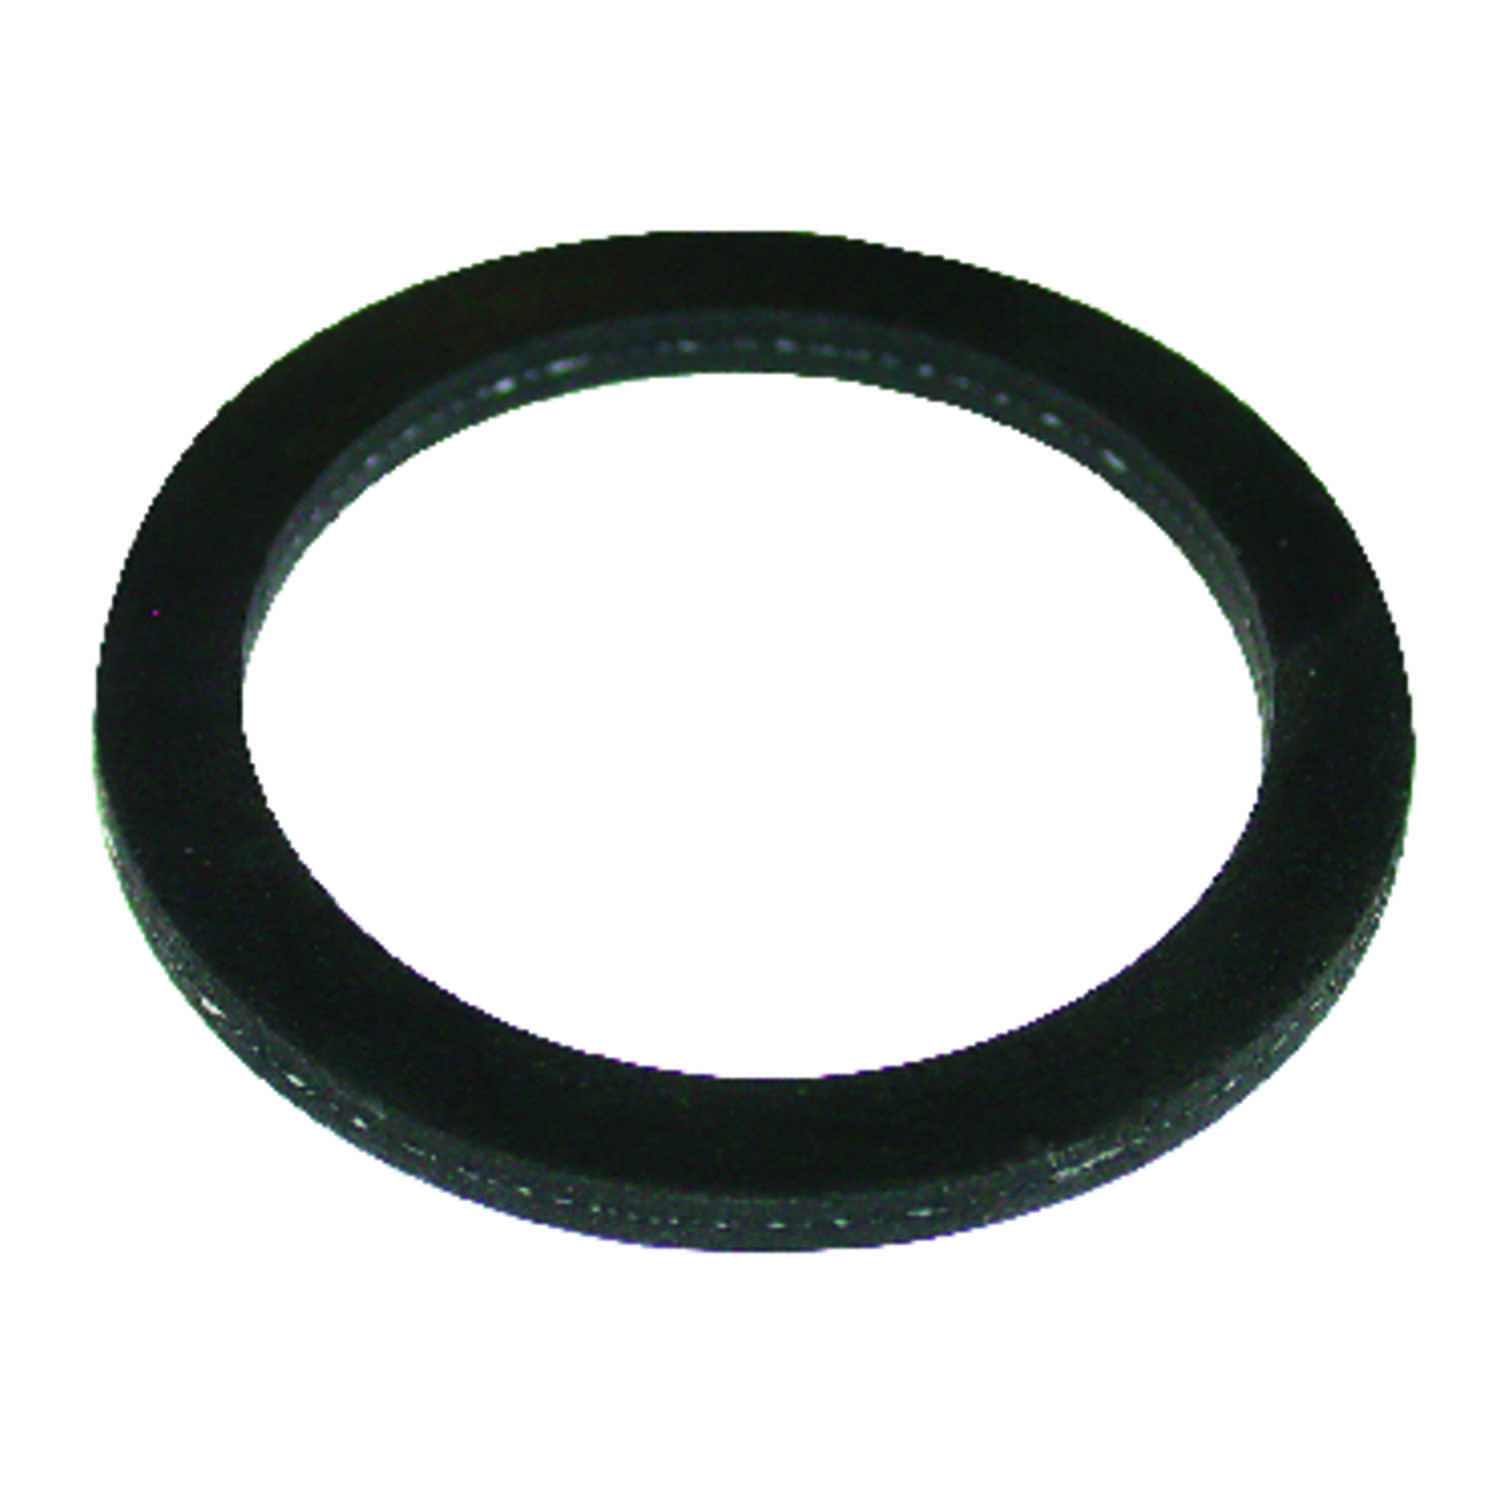 Ace  1-3/8 in. Dia. Rubber  Sink Strainer Coupling Washer  2